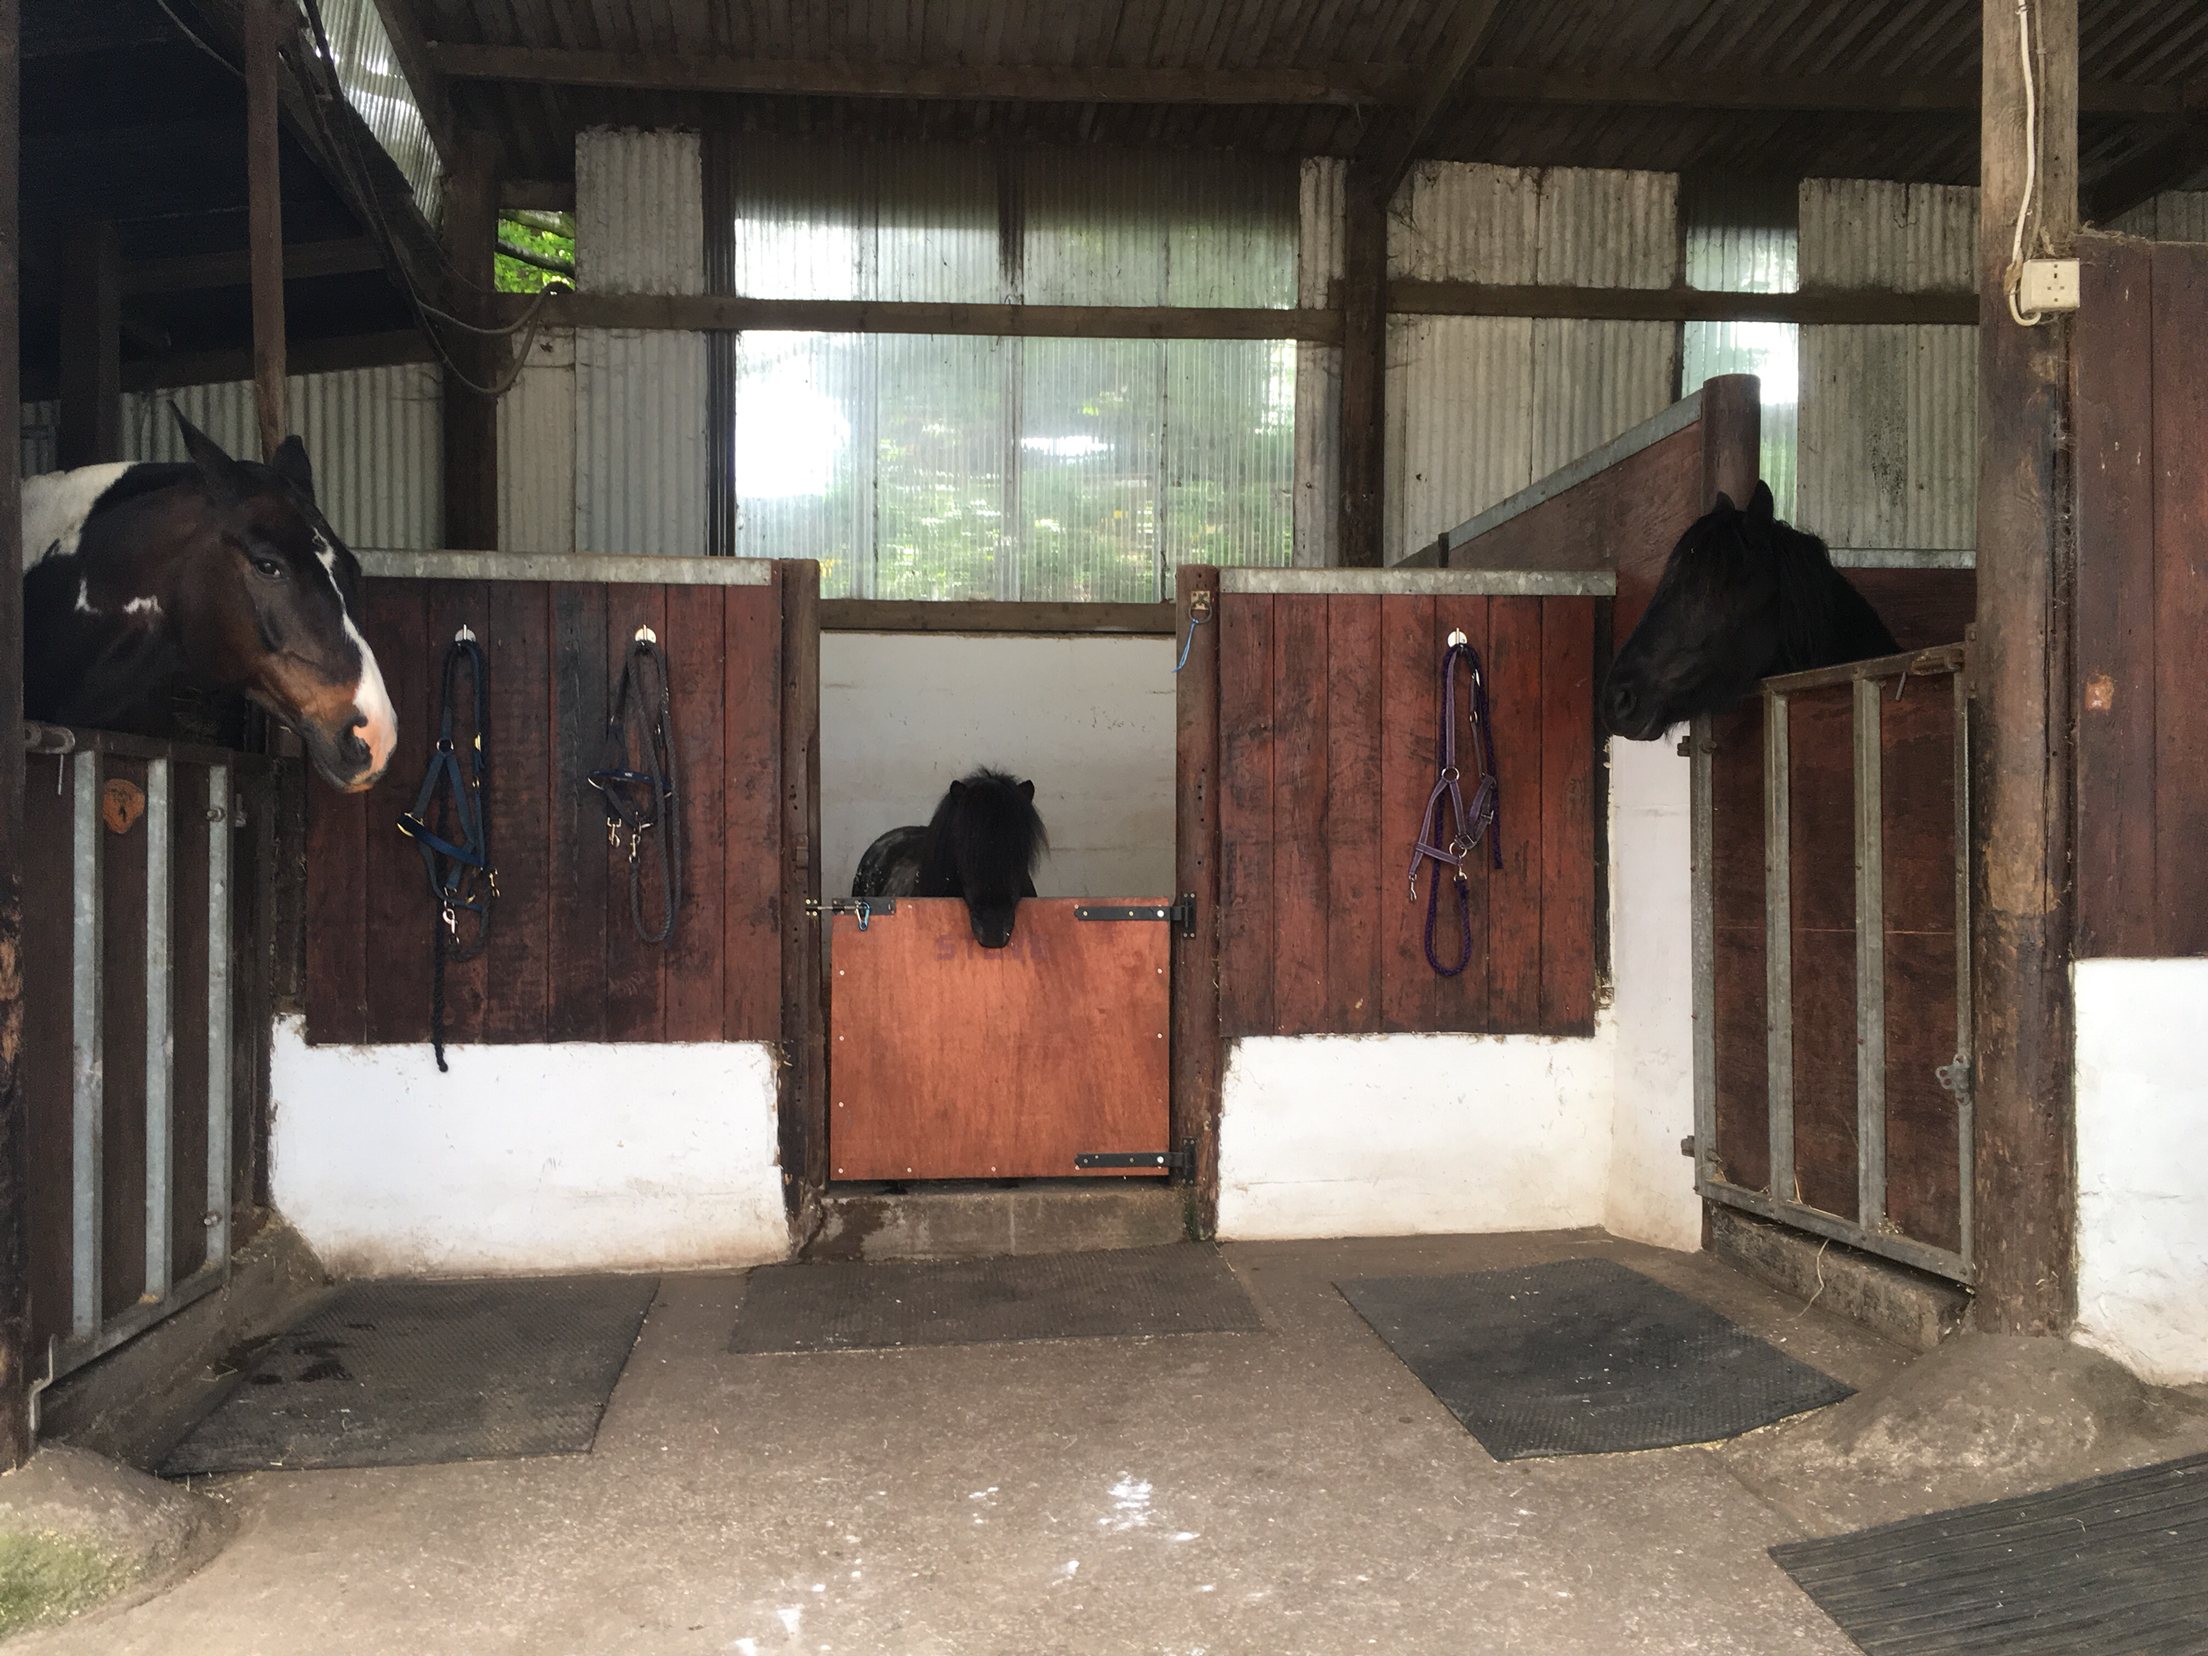 Stables available with own tack room for sale  Stockport